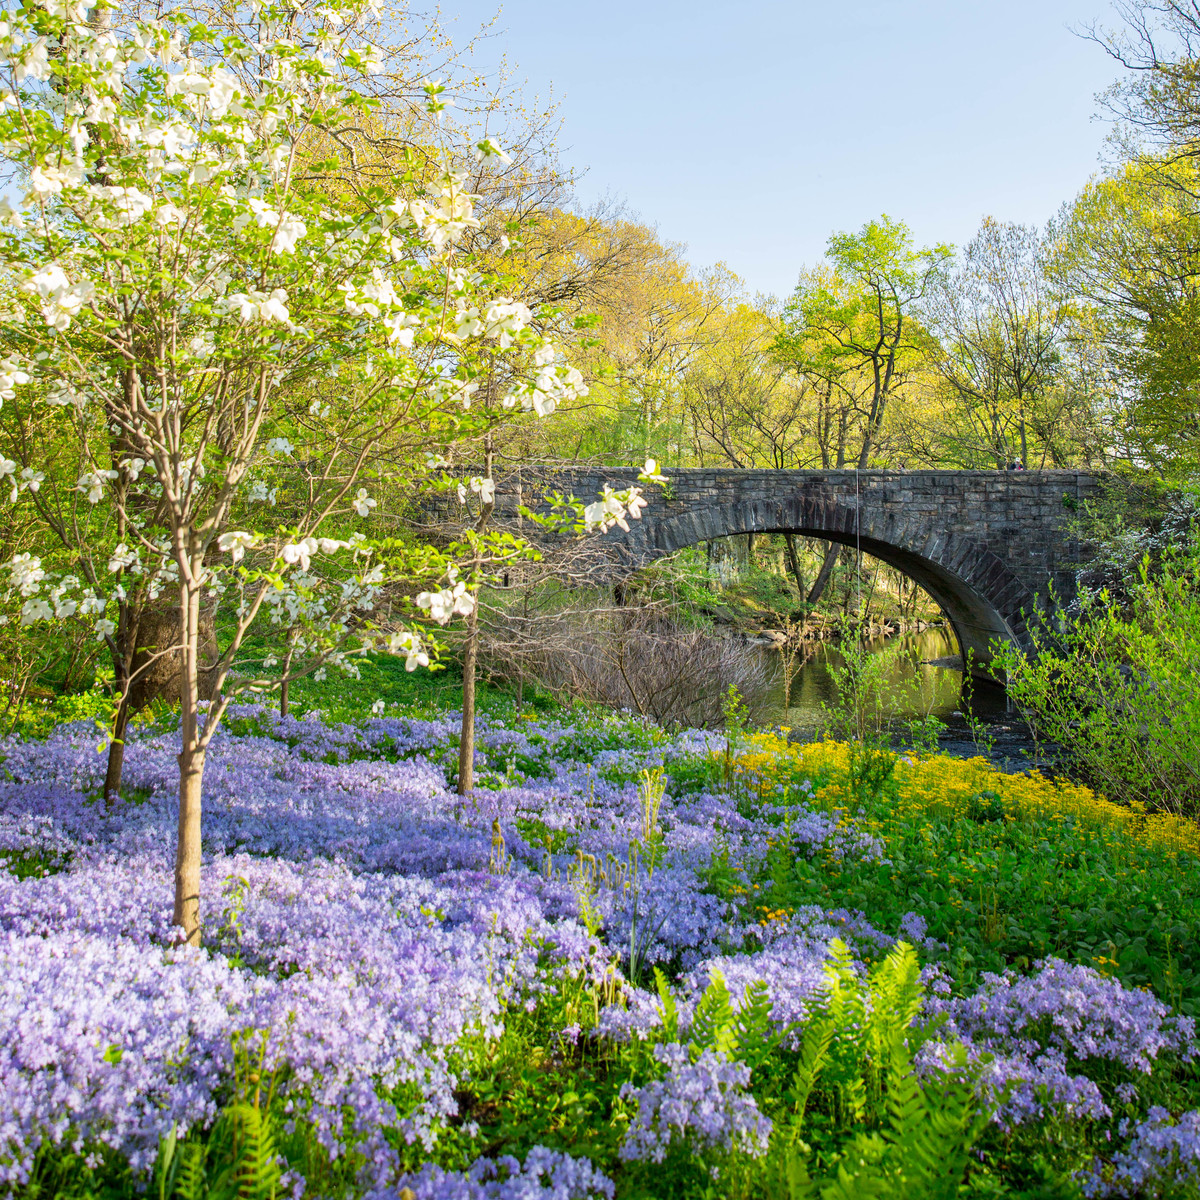 A spring display at NYBG's Stone Mill; photo by Marlon Co